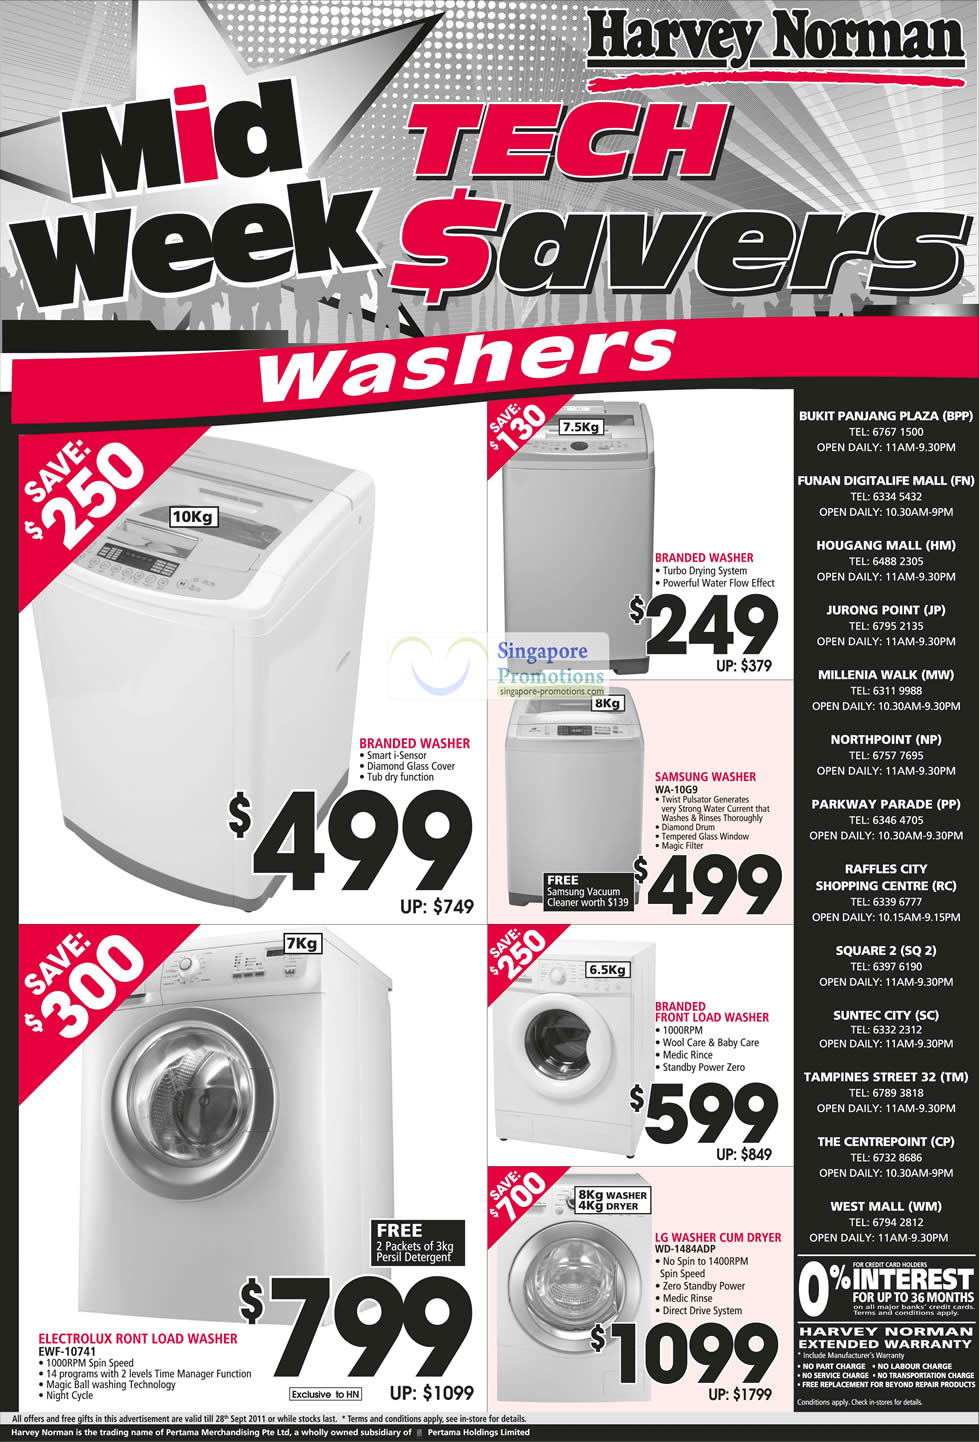 Harvey Norman Washing Machines Special Offers 22 28 Sep 2011